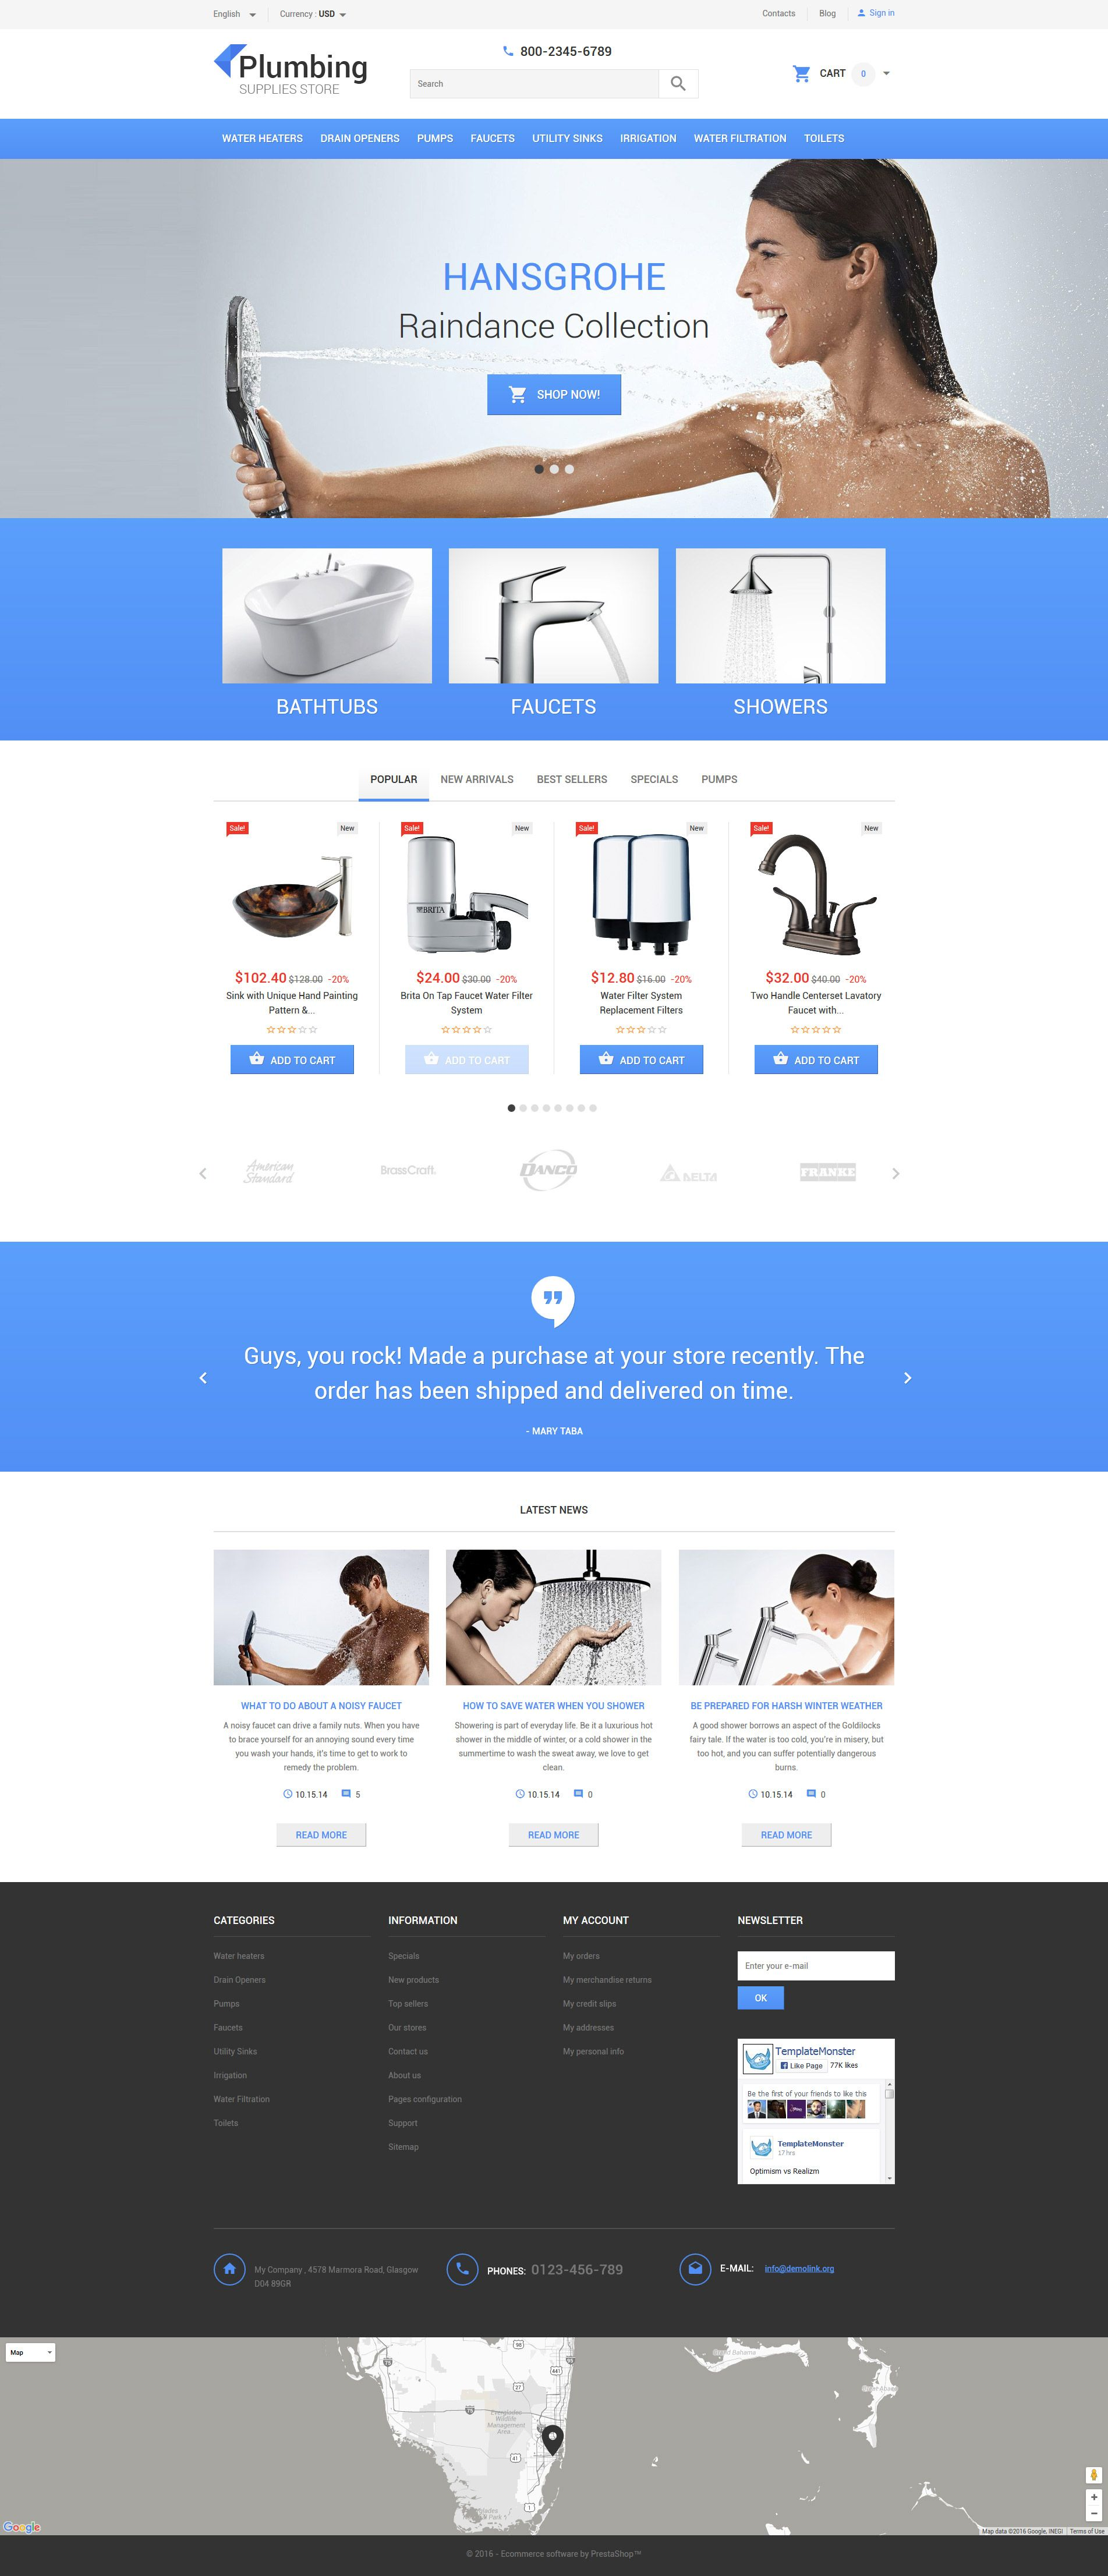 Plumbing supply prestashop theme httptemplatemonster more than website templates available choose your theme and build a professional looking site today solutioingenieria Choice Image